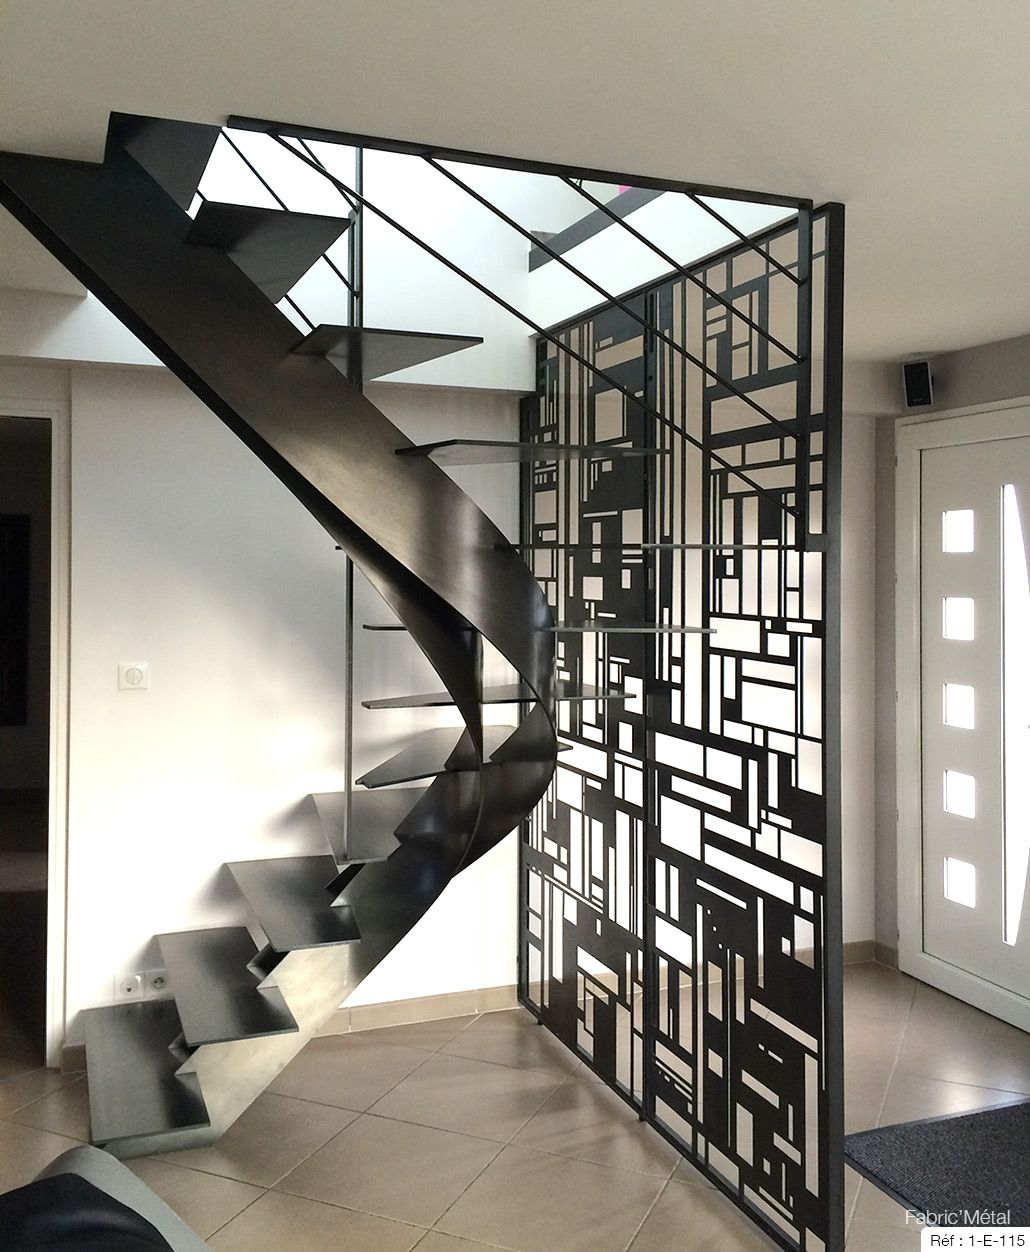 fabricant escalier metal bretagne vannes lorient rennes nantes escaliers pinterest. Black Bedroom Furniture Sets. Home Design Ideas